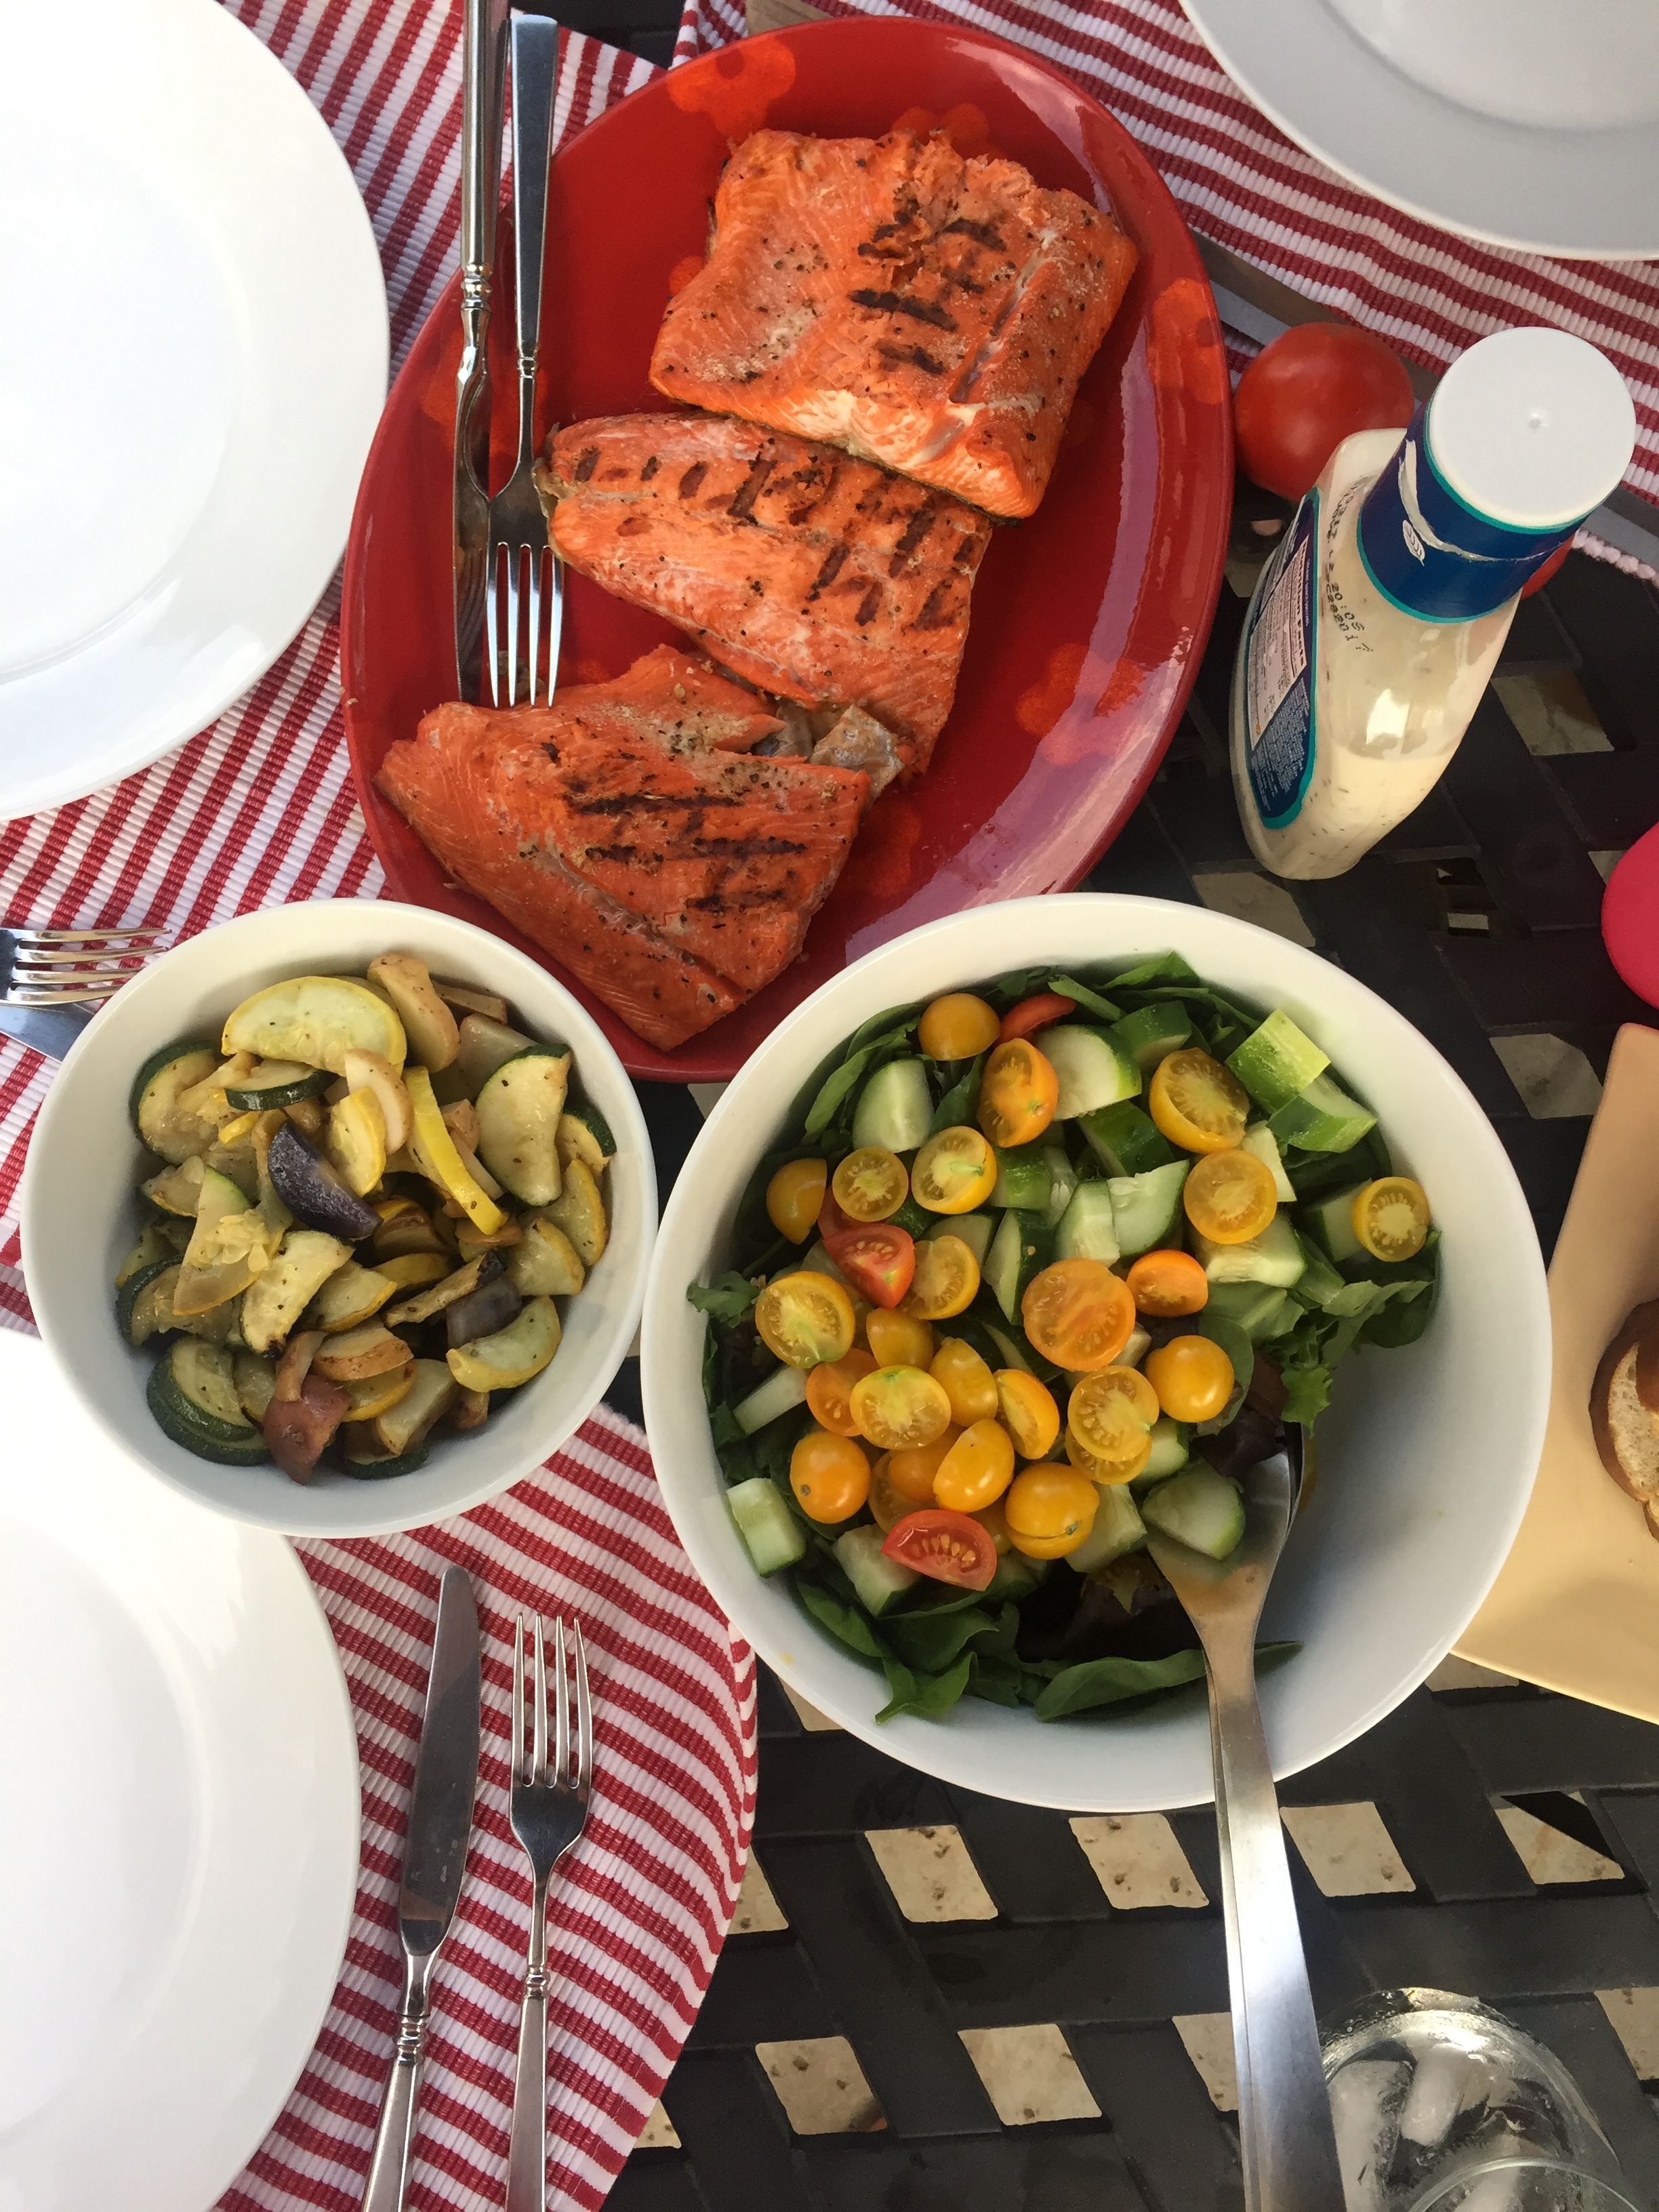 grilled salmon (long-time love of my life) + fresh salad + grilled veggies + bread & wine on the side.